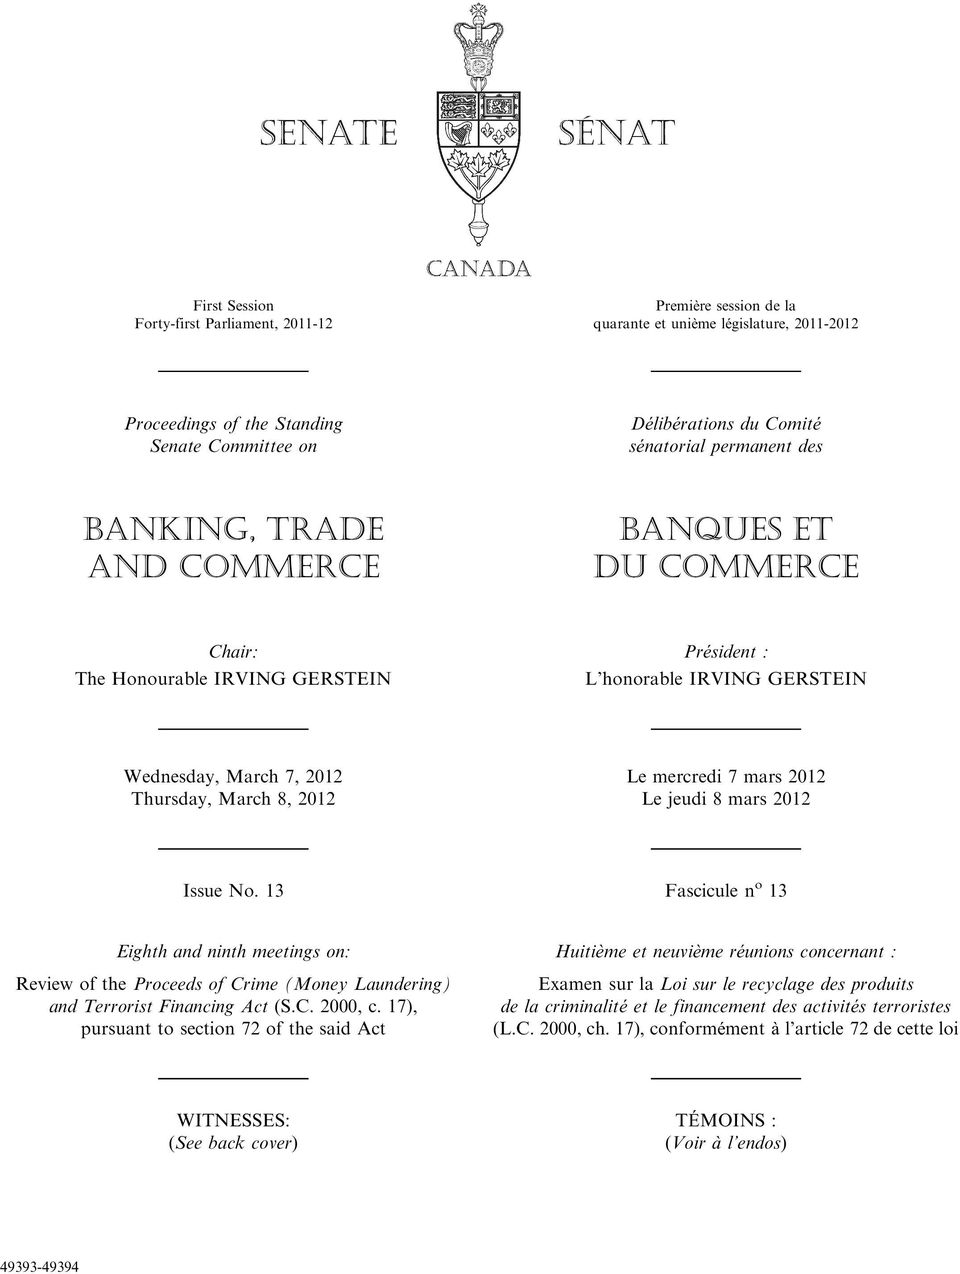 mercredi 7 mars 2012 Le jeudi 8 mars 2012 Issue No. 13 Fascicule n o 13 Eighth and ninth meetings on: Review of the Proceeds of Crime (Money Laundering) and Terrorist Financing Act (S.C. 2000, c.